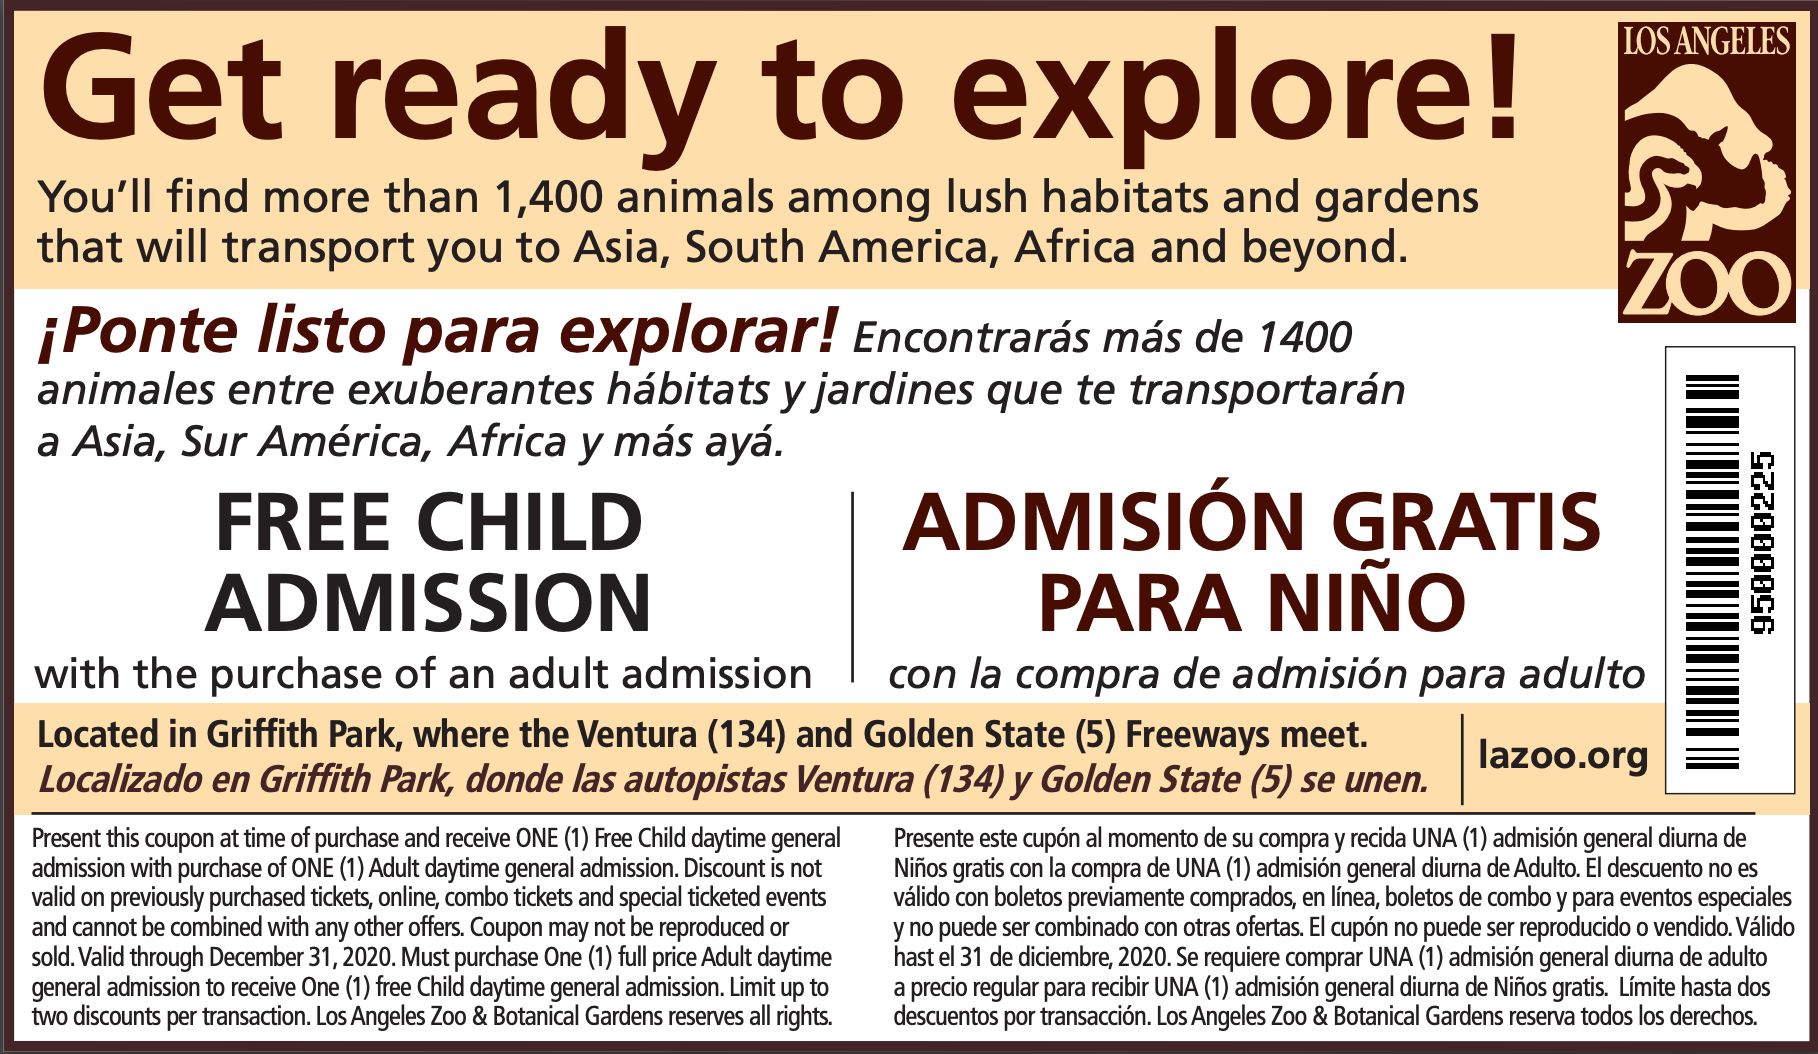 ONE (1) Free Child daytime general admission with purchase of ONE (1) Adult daytime general admission to the L.A. Zoo